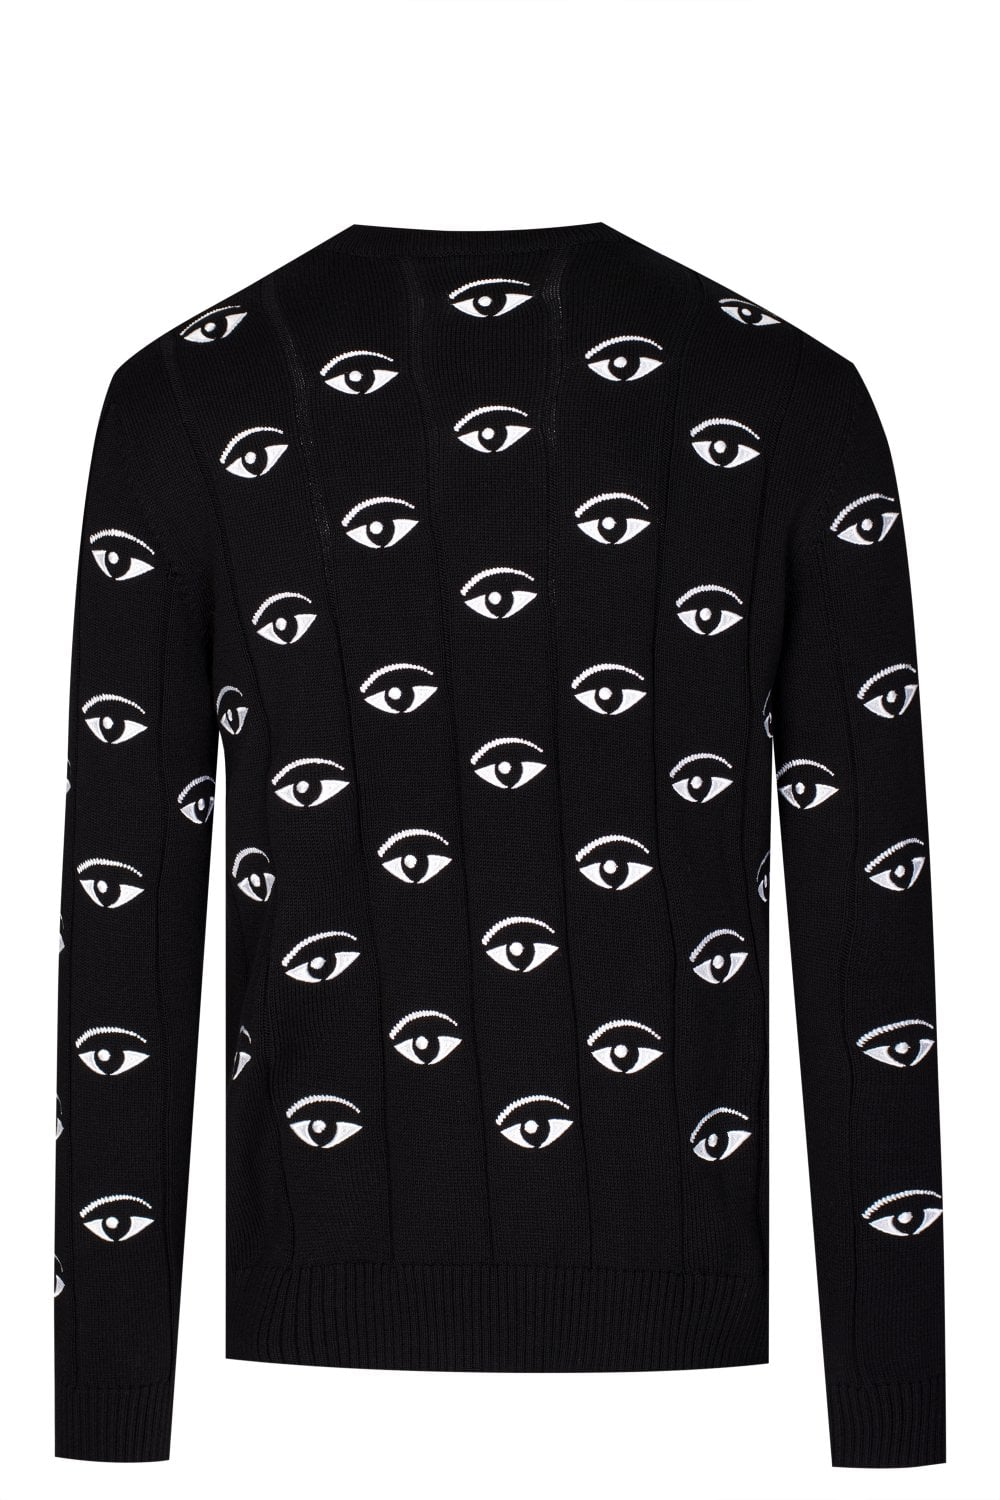 2b66e96bd1 KENZO Kenzo Paris Multi-eye Knitted Jumper - Clothing from Circle ...